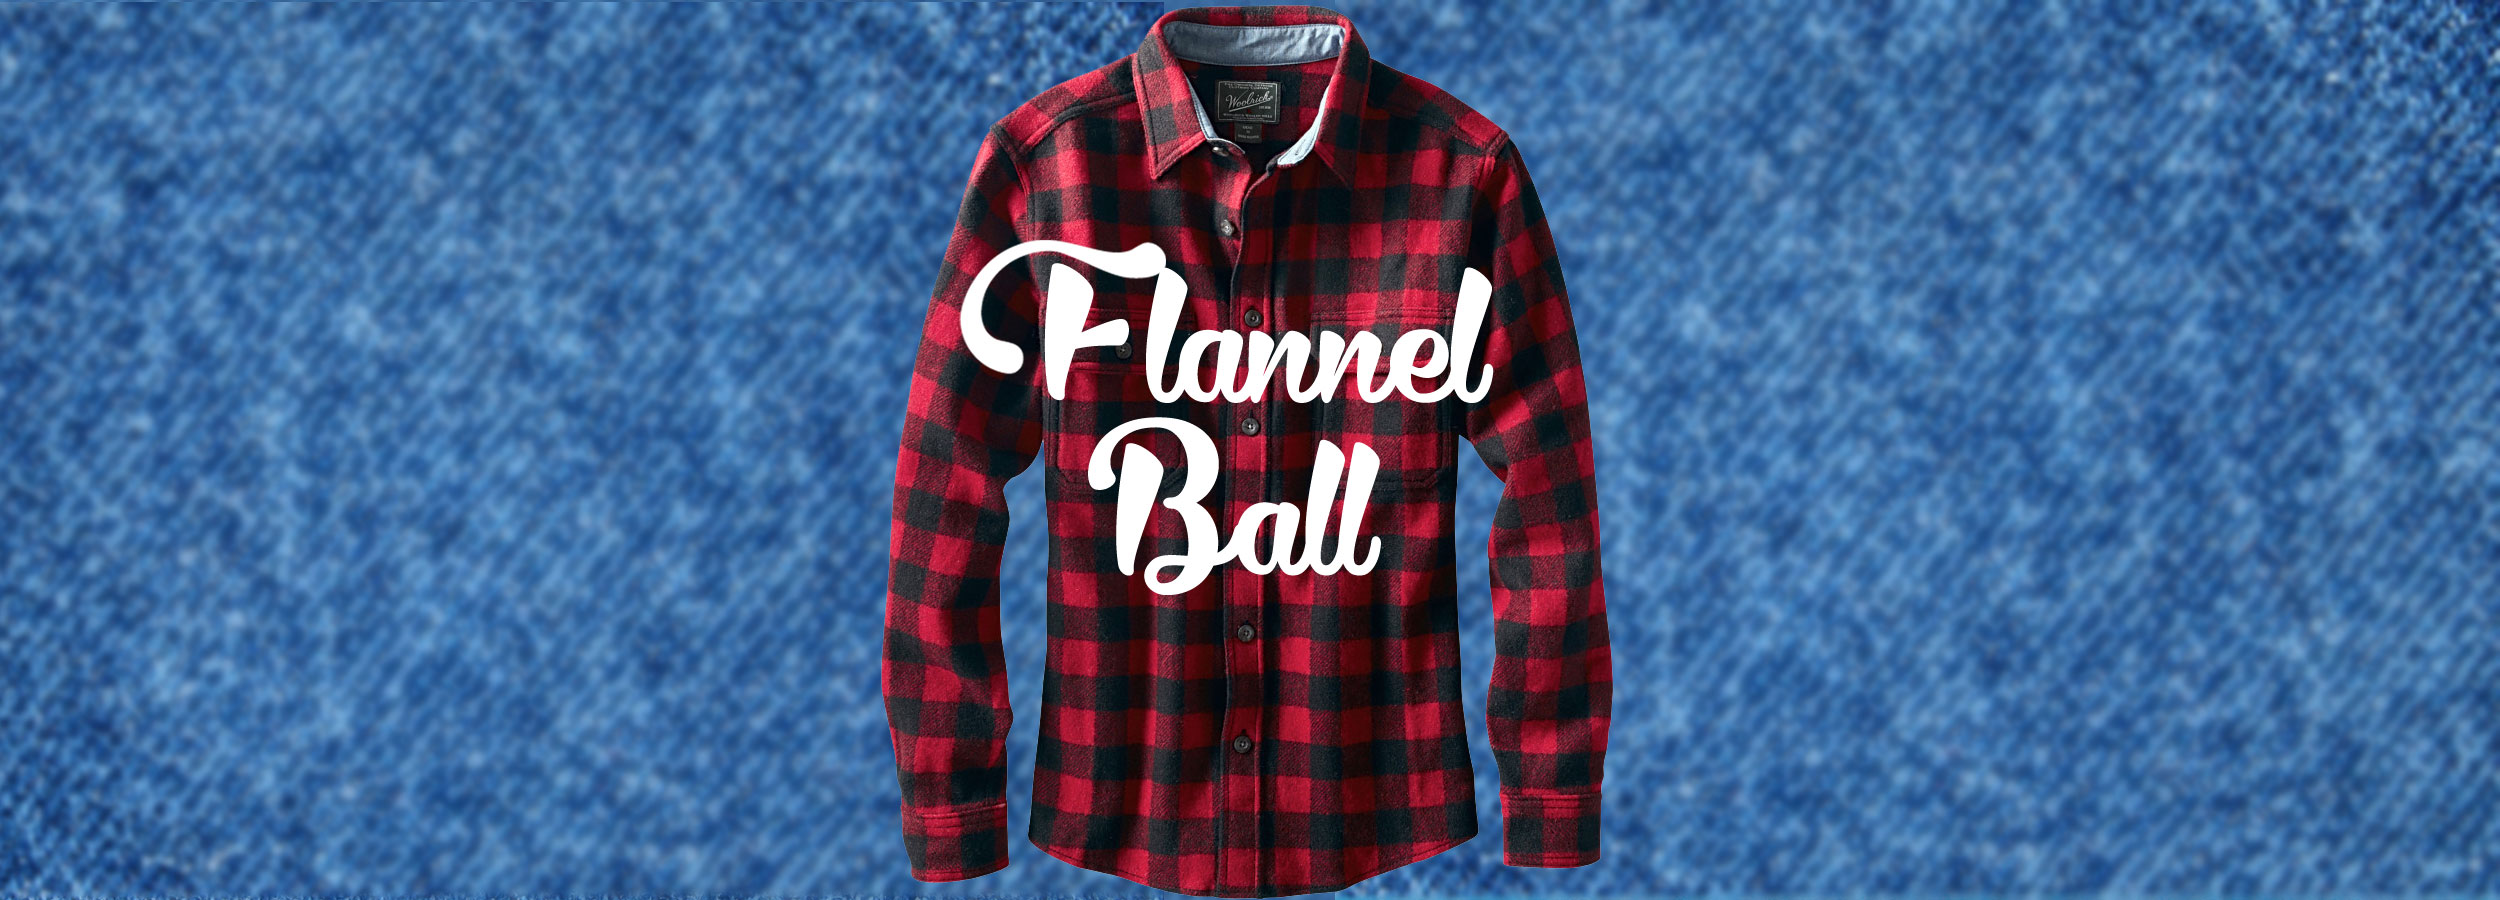 Flannel Ball, Phoenix